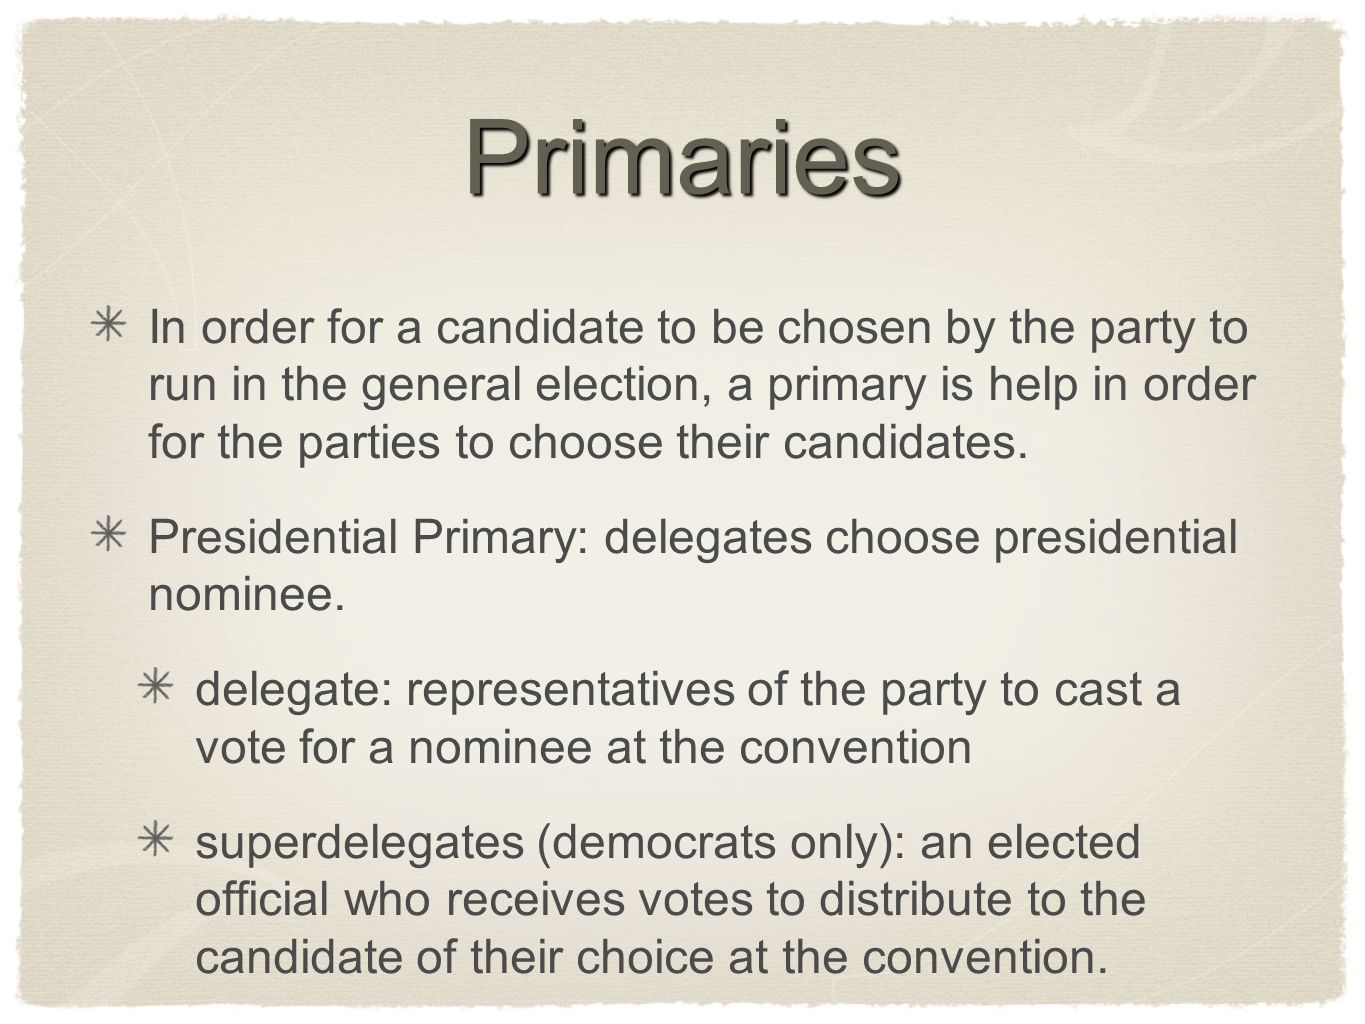 Primaries In order for a candidate to be chosen by the party to run in the general election, a primary is help in order for the parties to choose thei